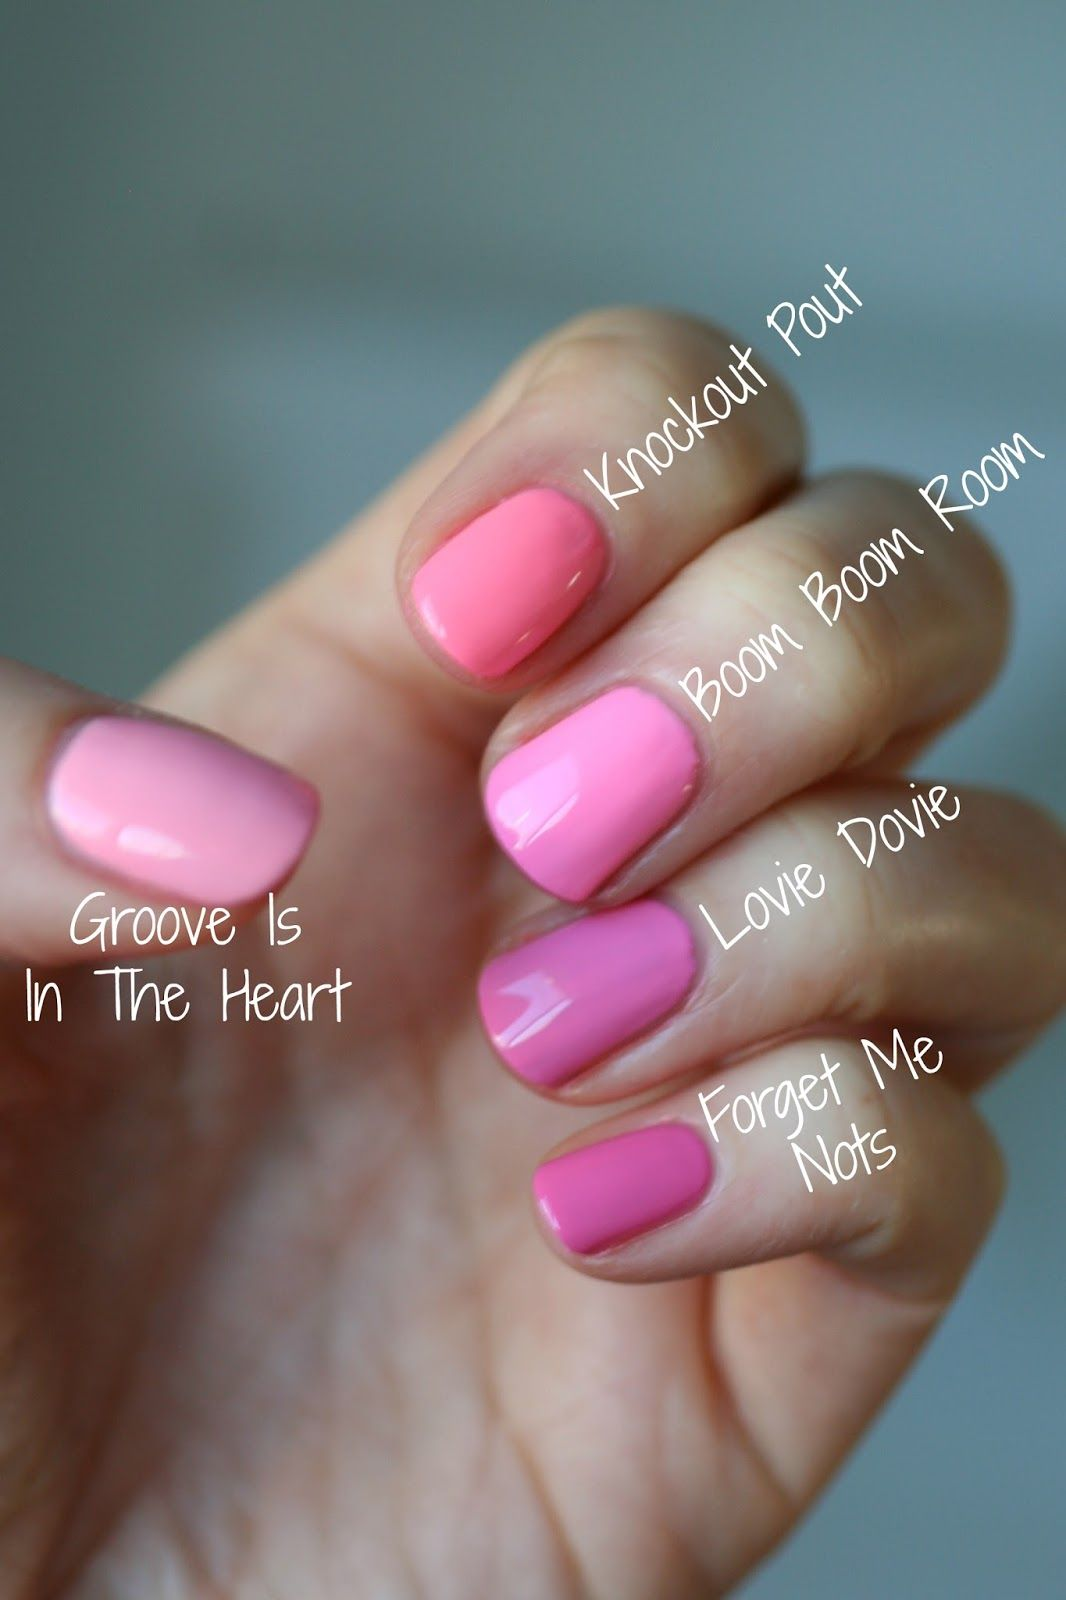 Essie Bubble Gum Pinks Comparison Essie Envy Essie Nail Colors Nail Polish Nail Polish Colors